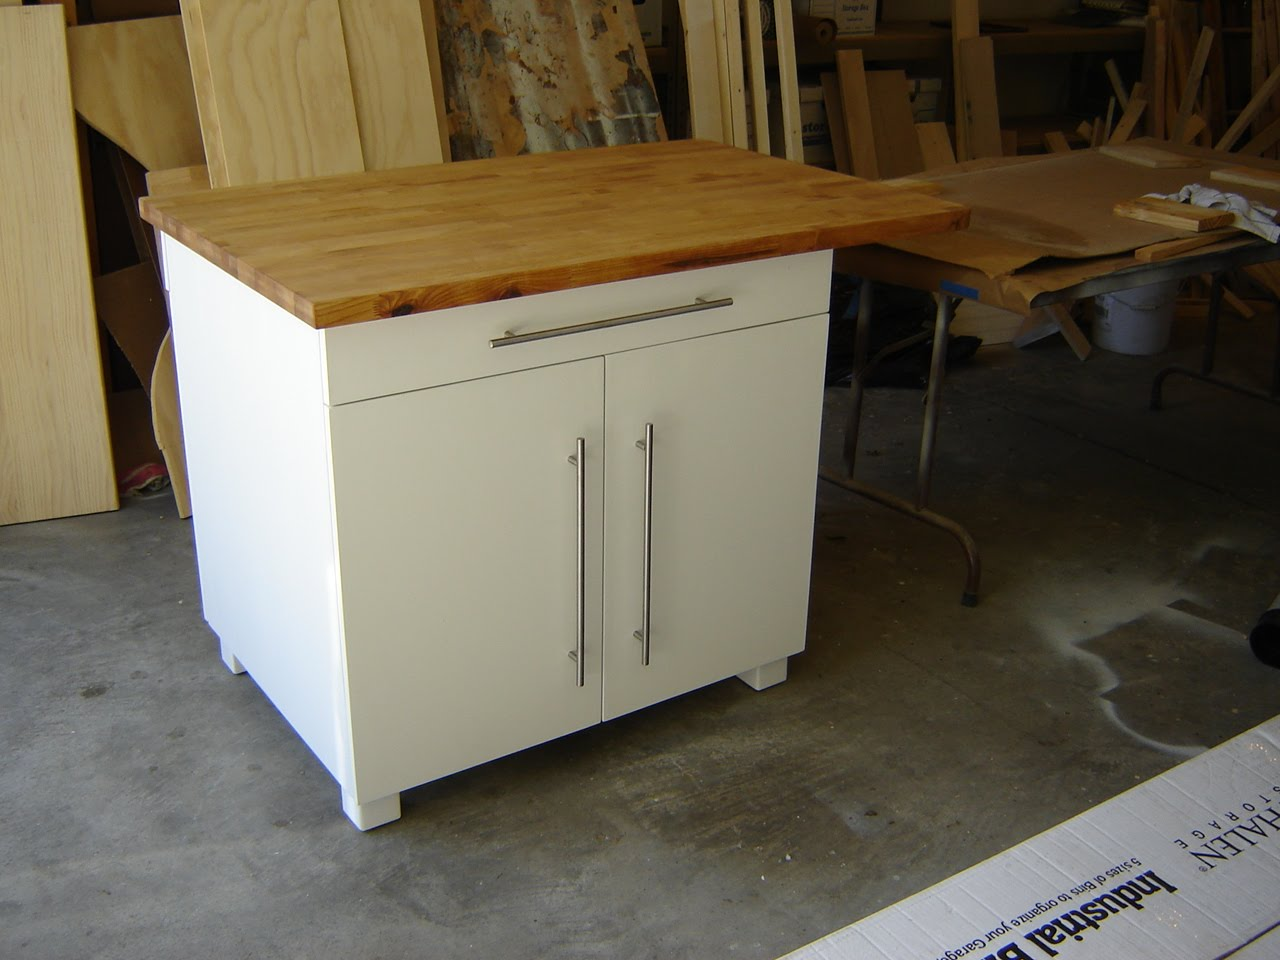 Kitchen Butcher Block Cabinets : The Woodmaster: Kitchen Cabinet - Butcher Block Top